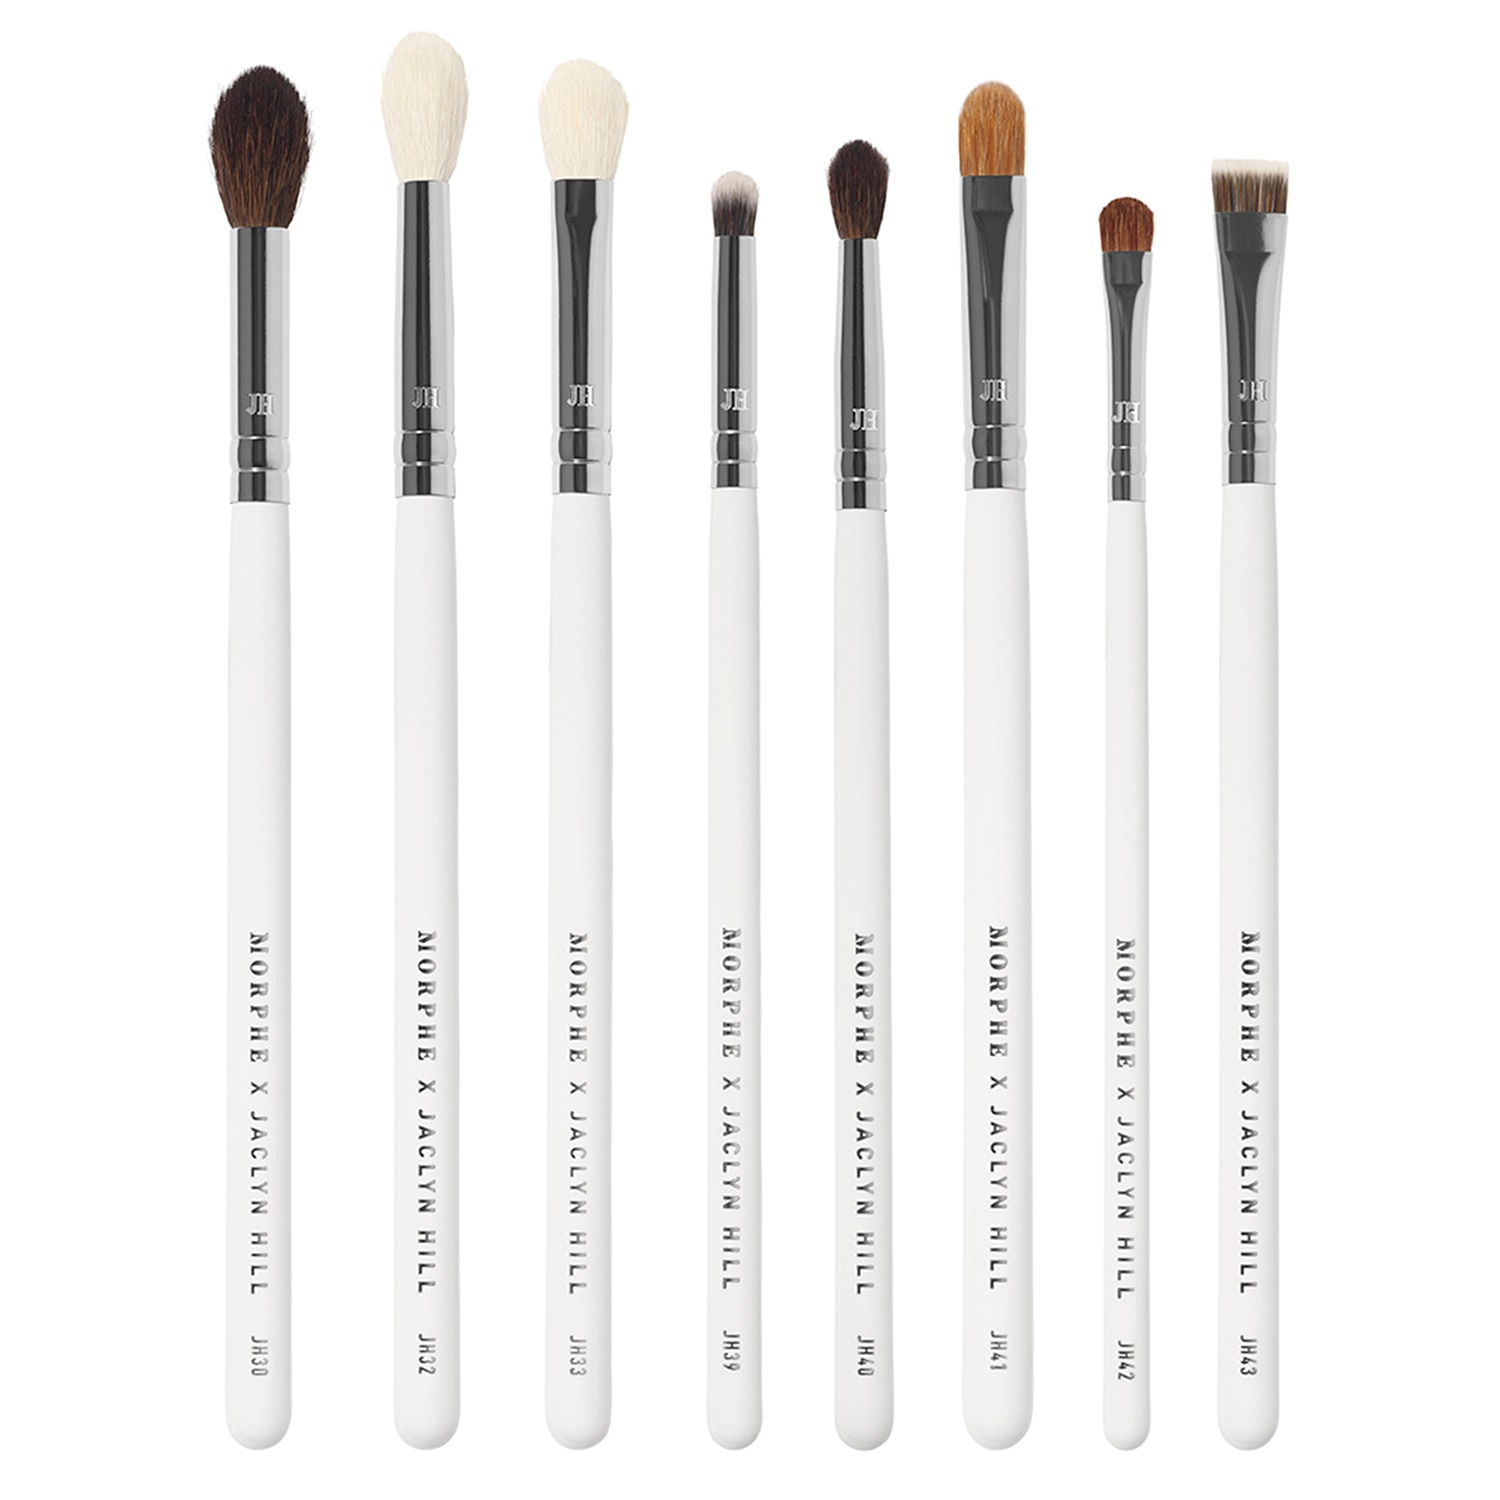 MORPHE X JACLYN HILL THE EYE MASTER BRUSH SET (8 BROCHAS PARA OJOS PERSONALIZADAS + BOLSA)